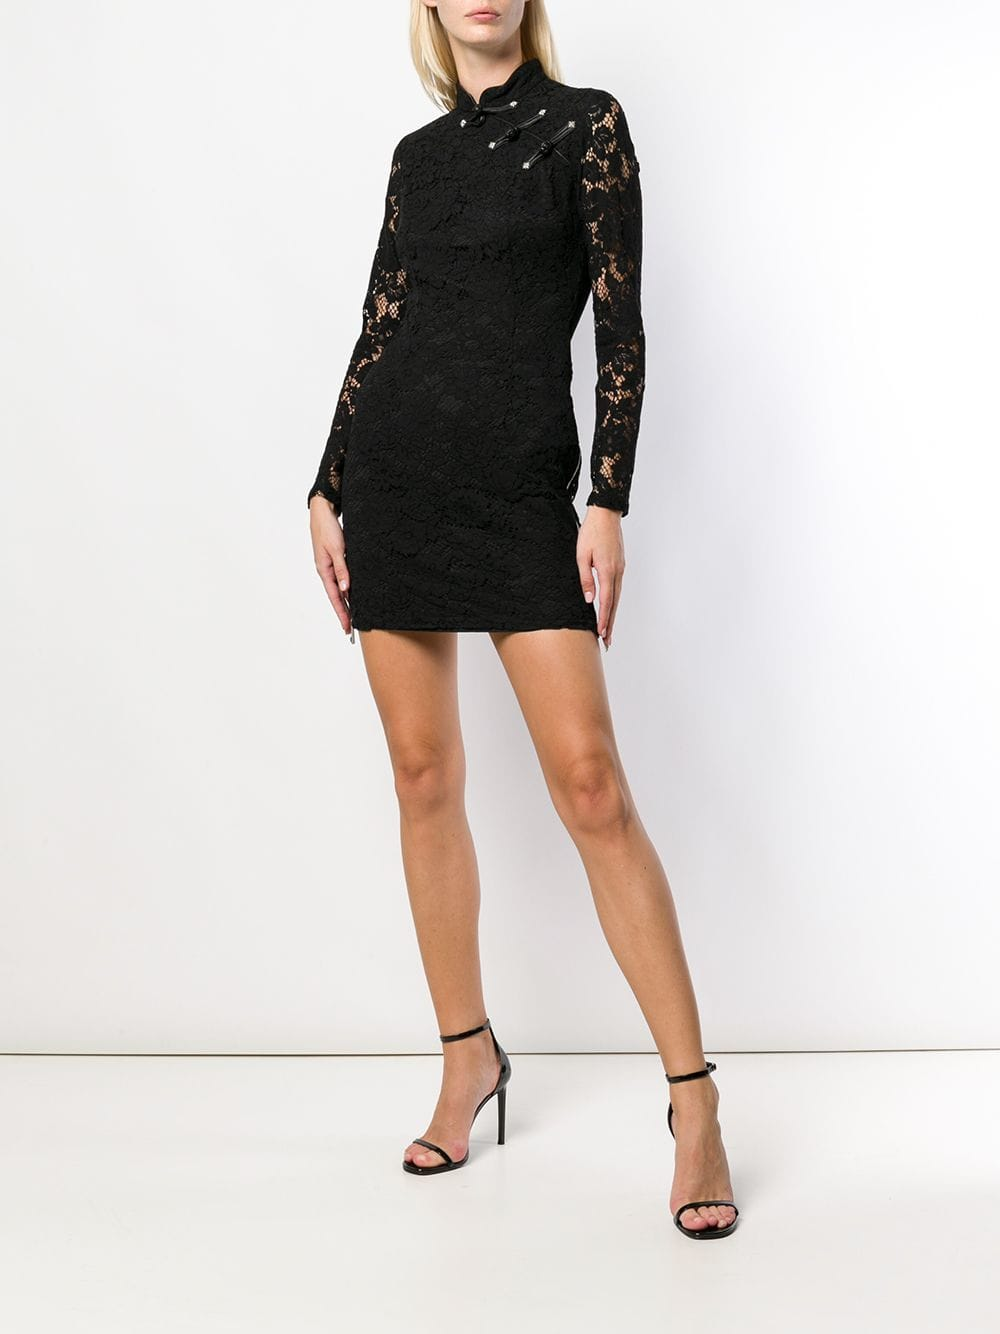 JOHN RICHMOND Fitted Lace Black Dress